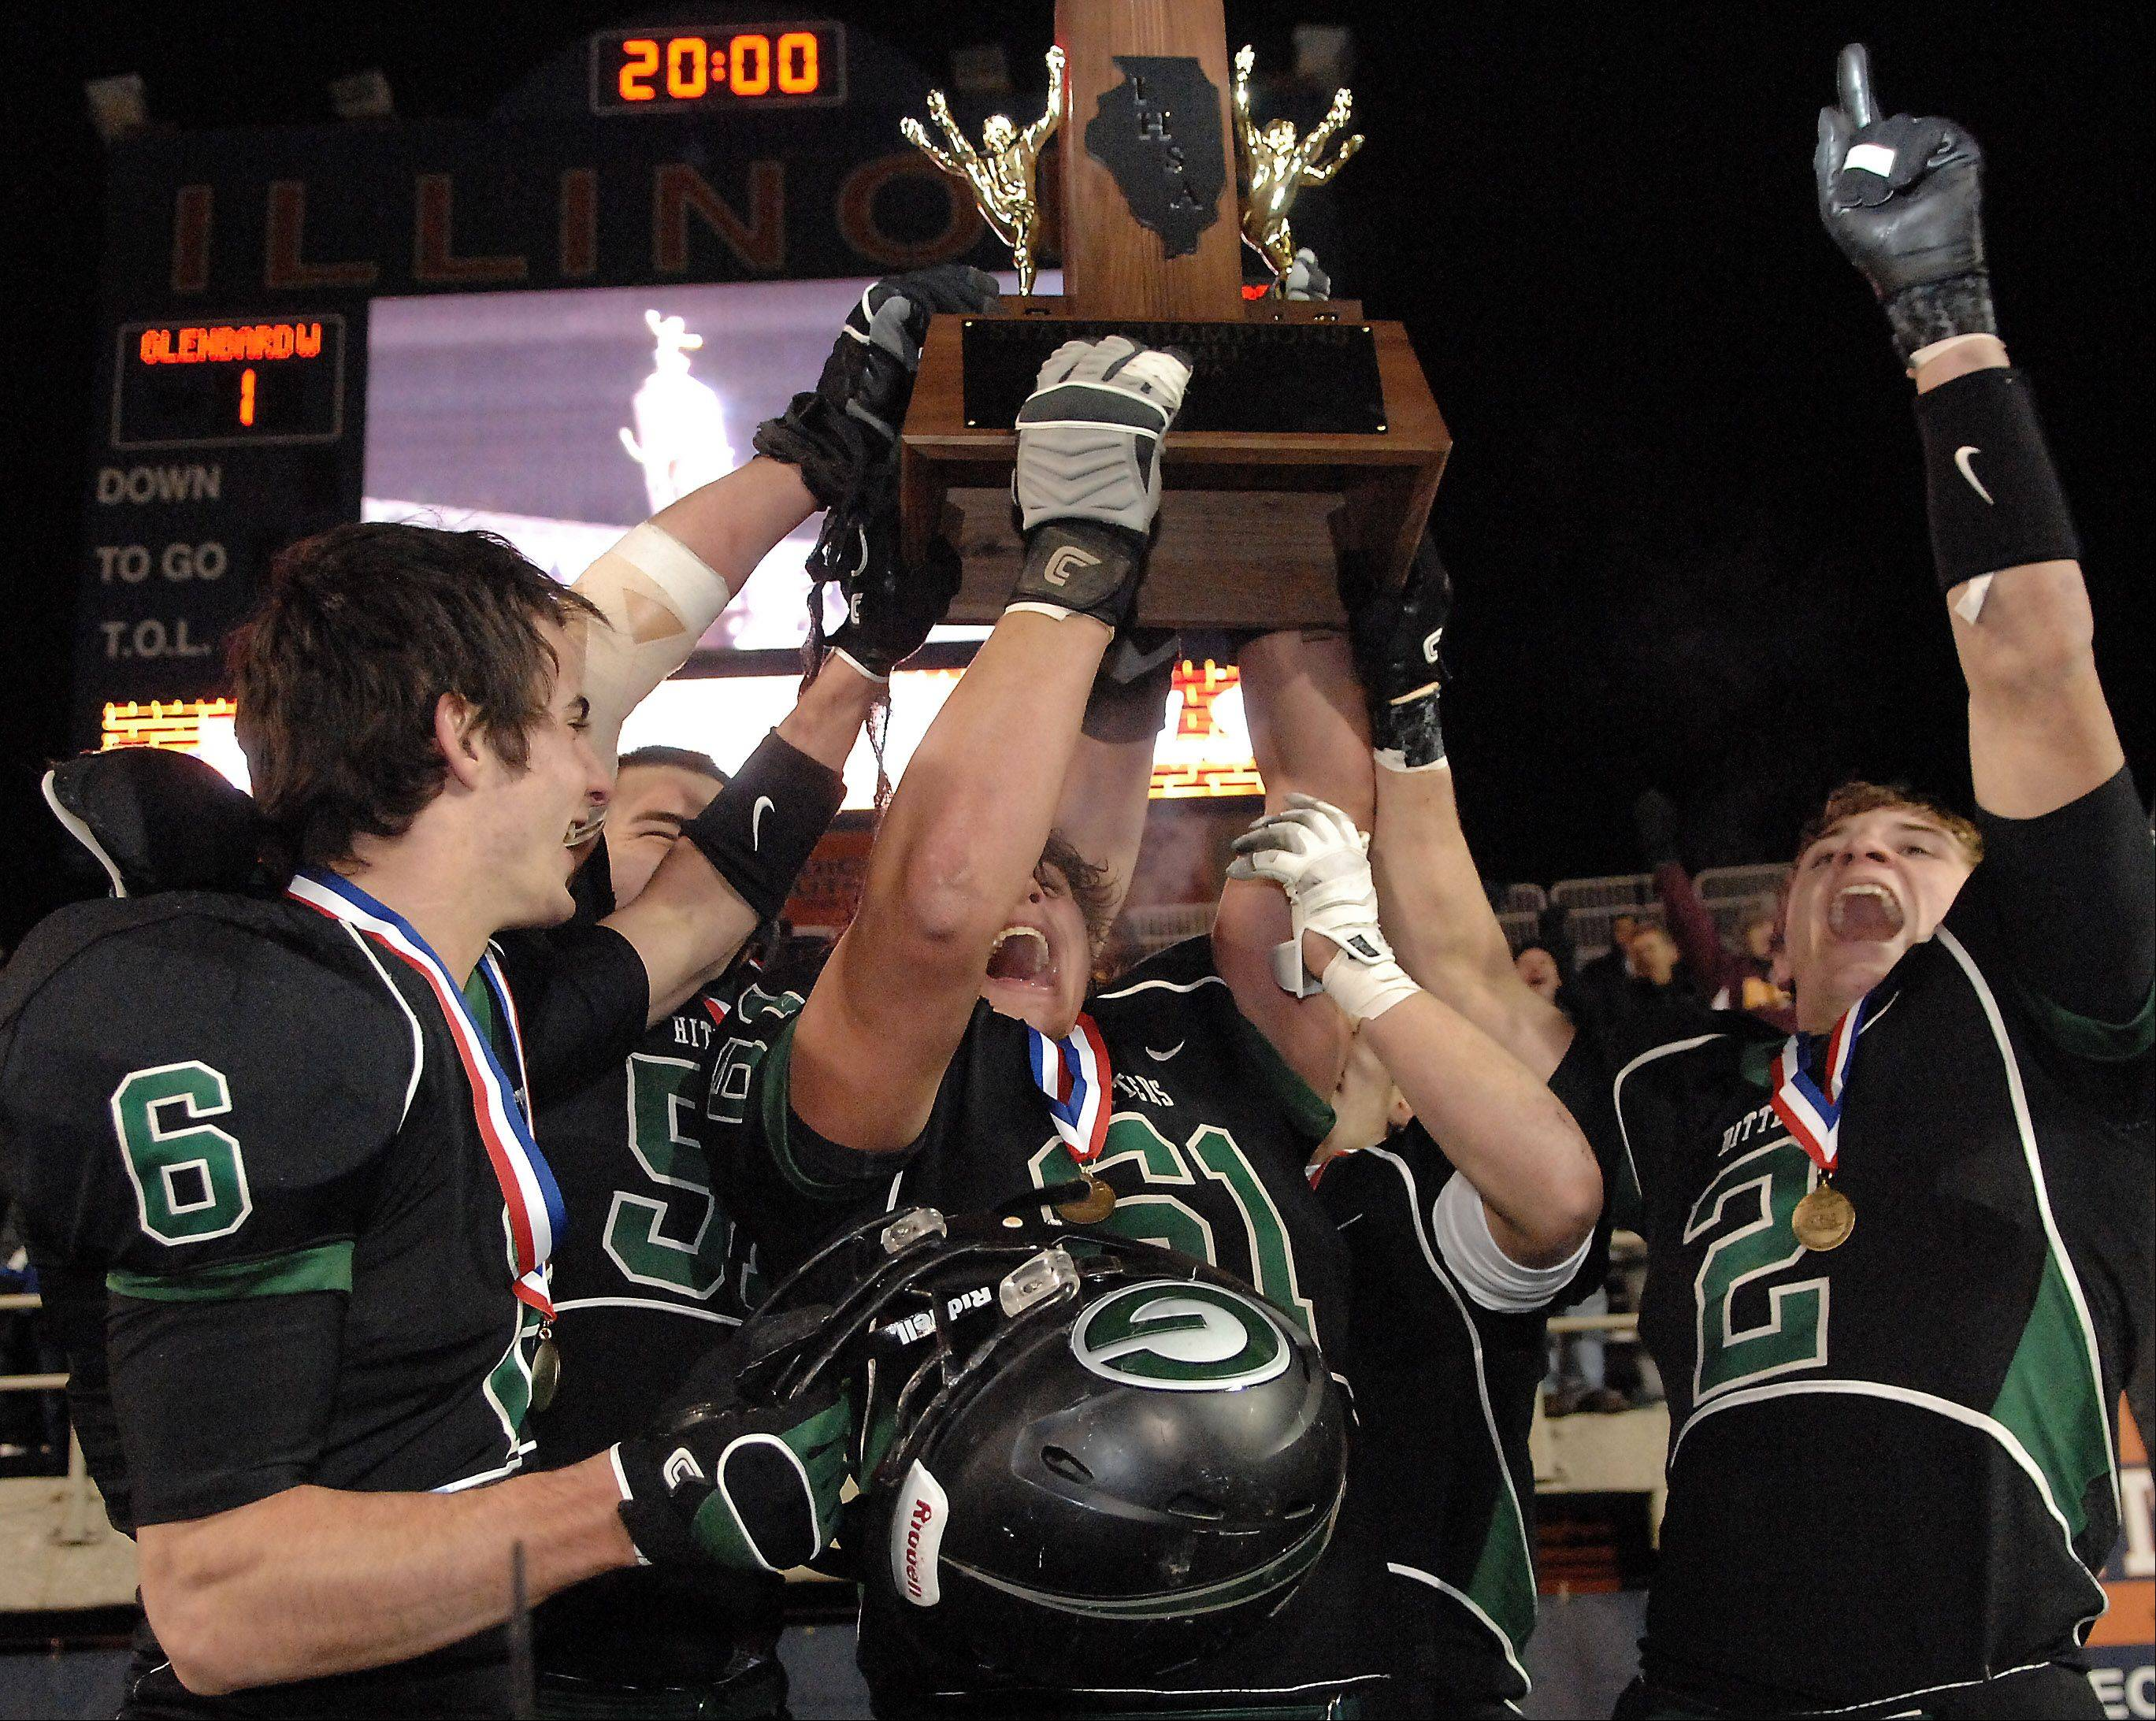 Glenbard West nails down 7A championship